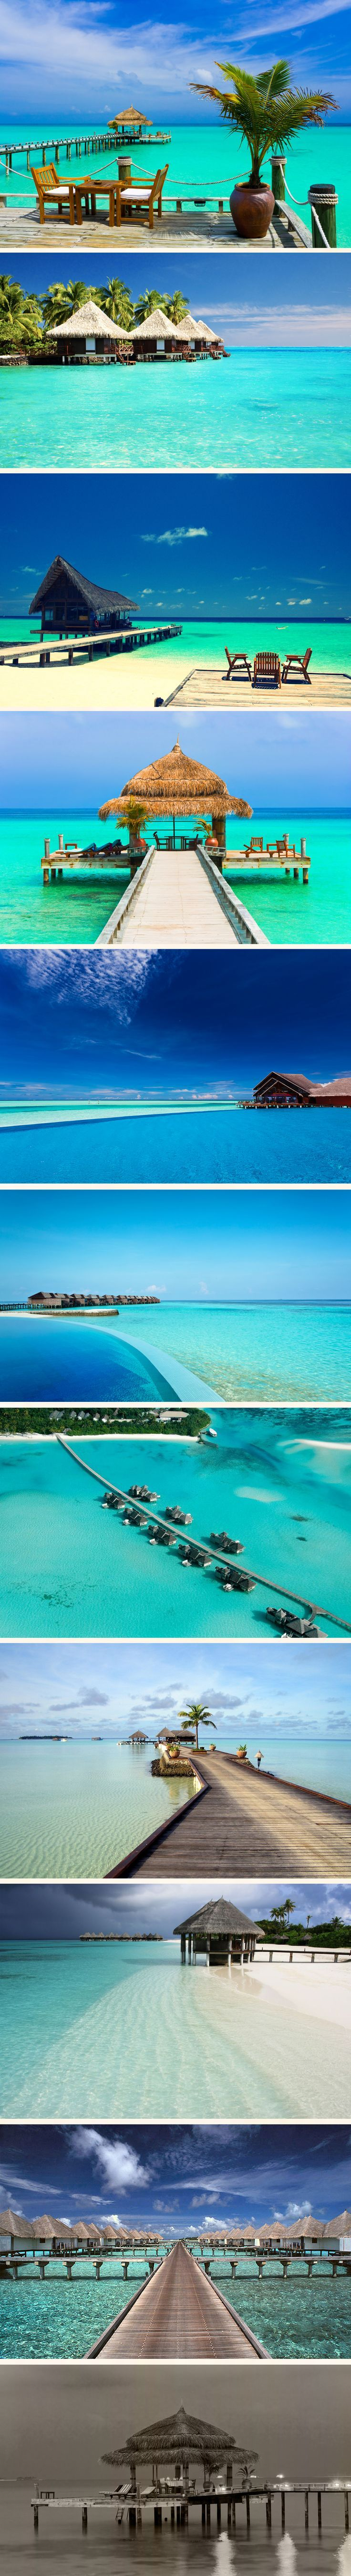 I mean, I could totally use a few days visiting the Maldives. Who couldn't??